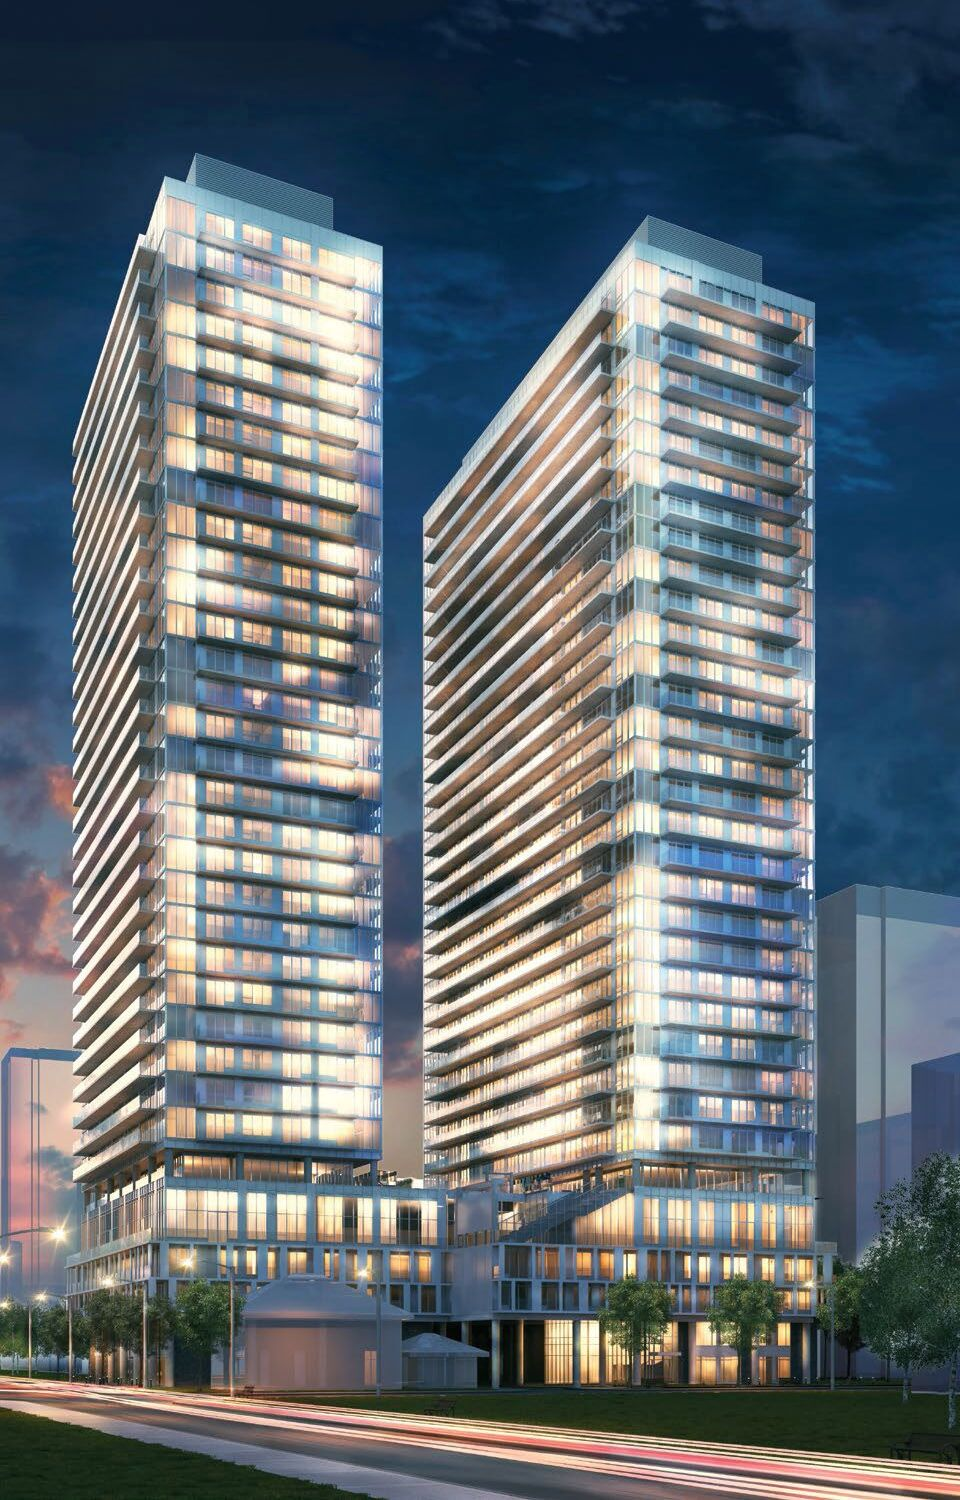 Midtown Toronto: Growth to Watch For in 2016